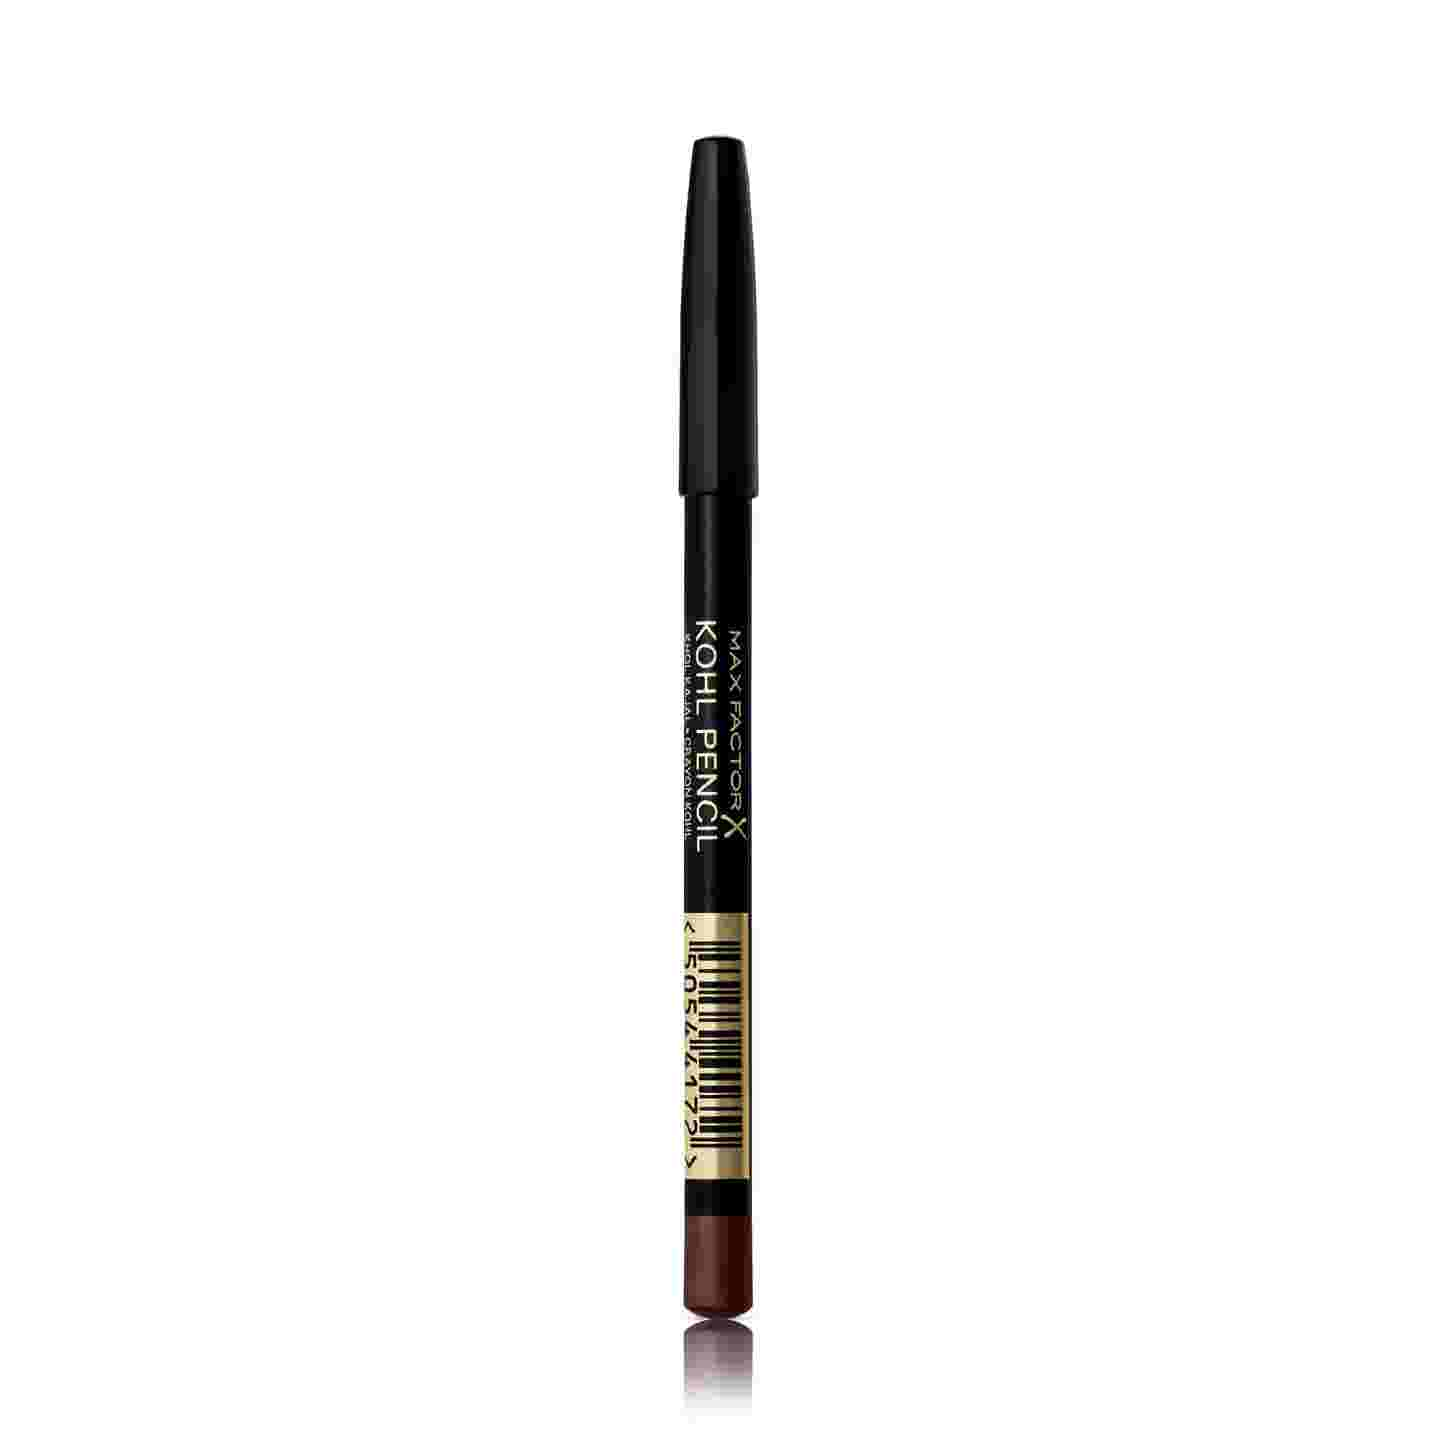 Max Factor Kohl Pencil in Brown